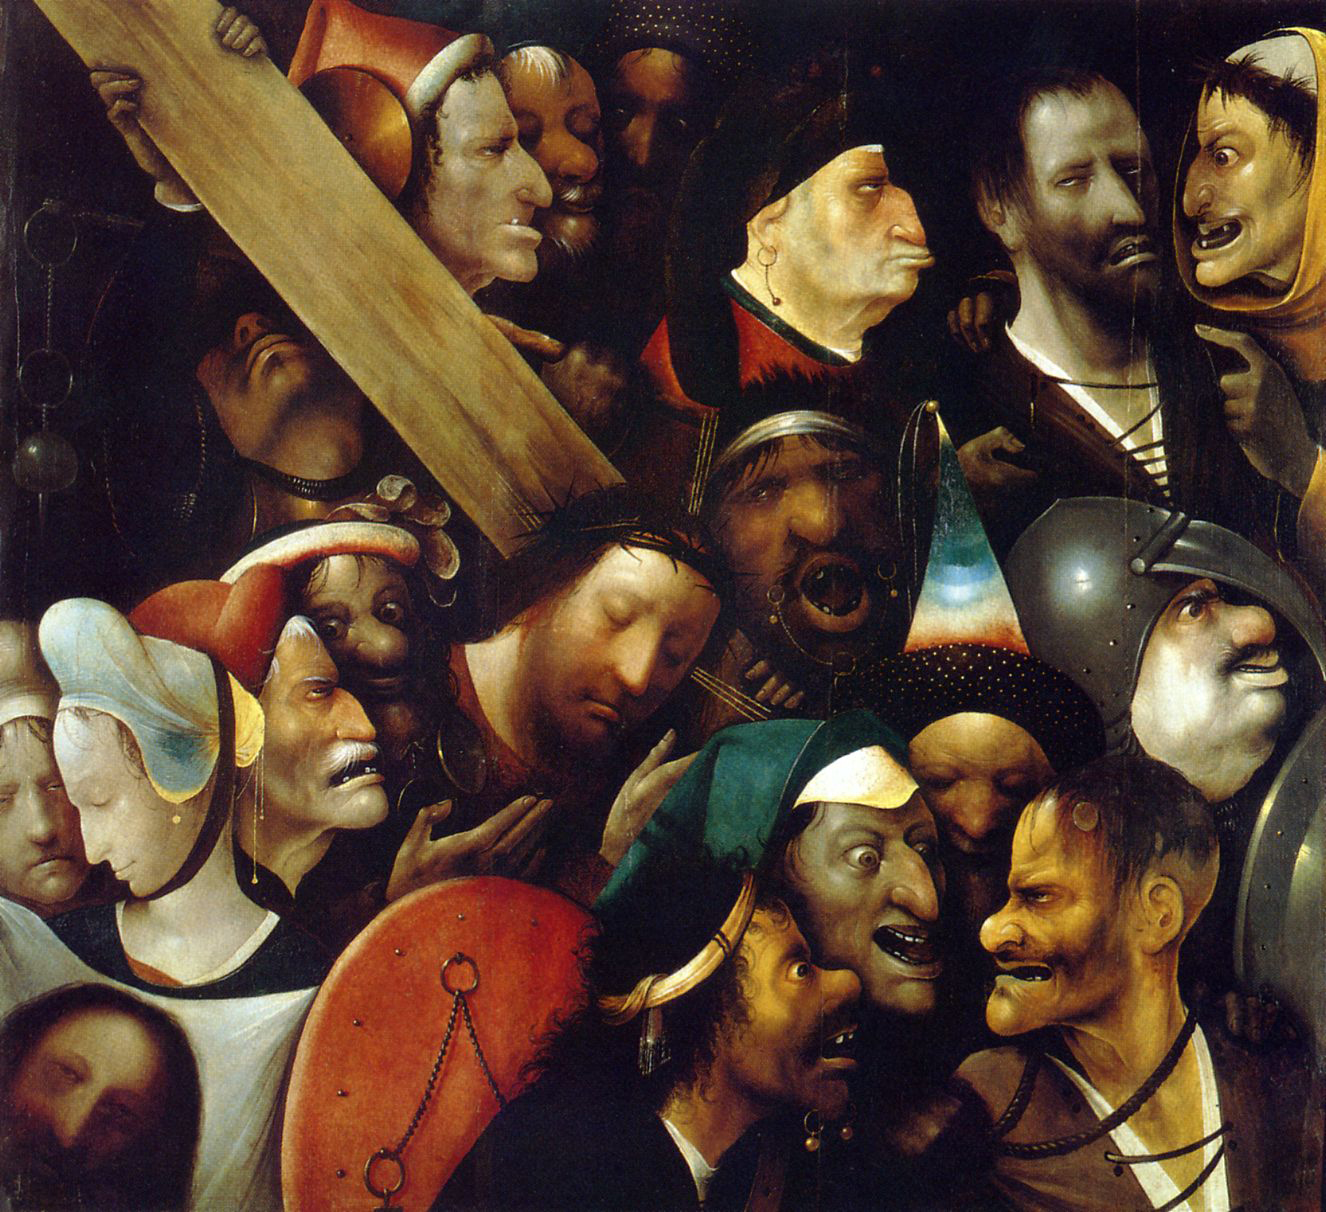 09)  Jheronimus Bosch - de Kruisdraging